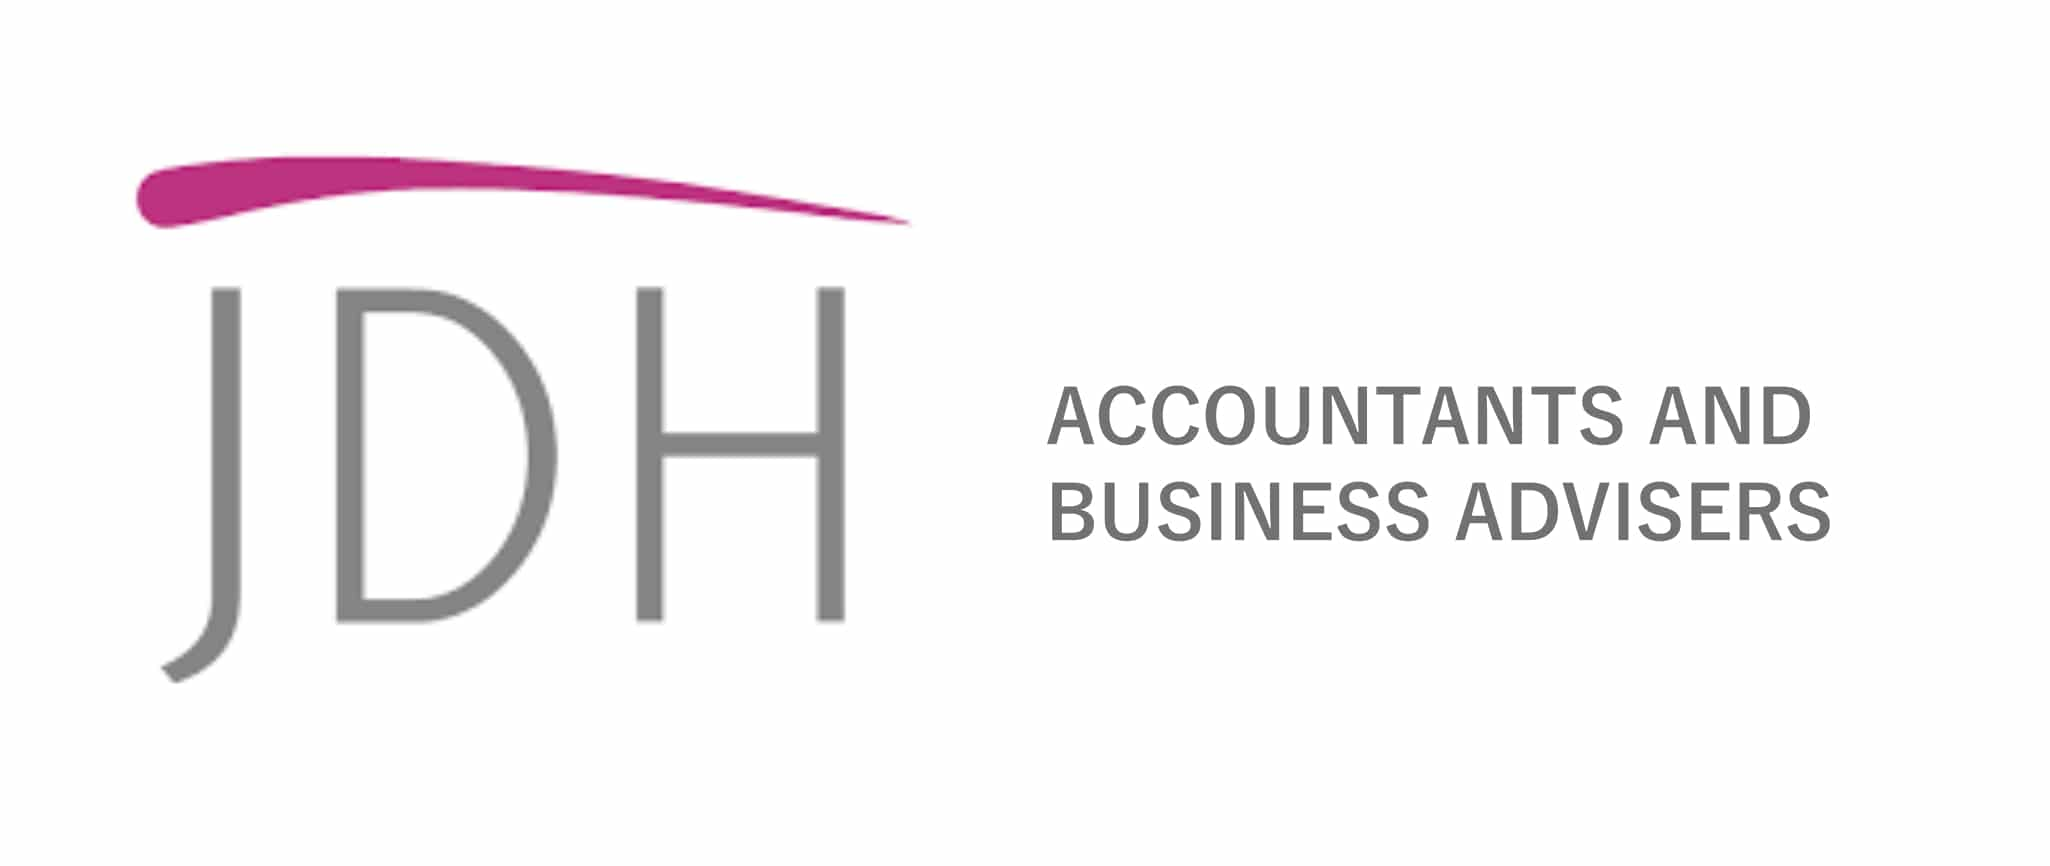 JDH Accountants & Business Advisers | Ystrad Mynach